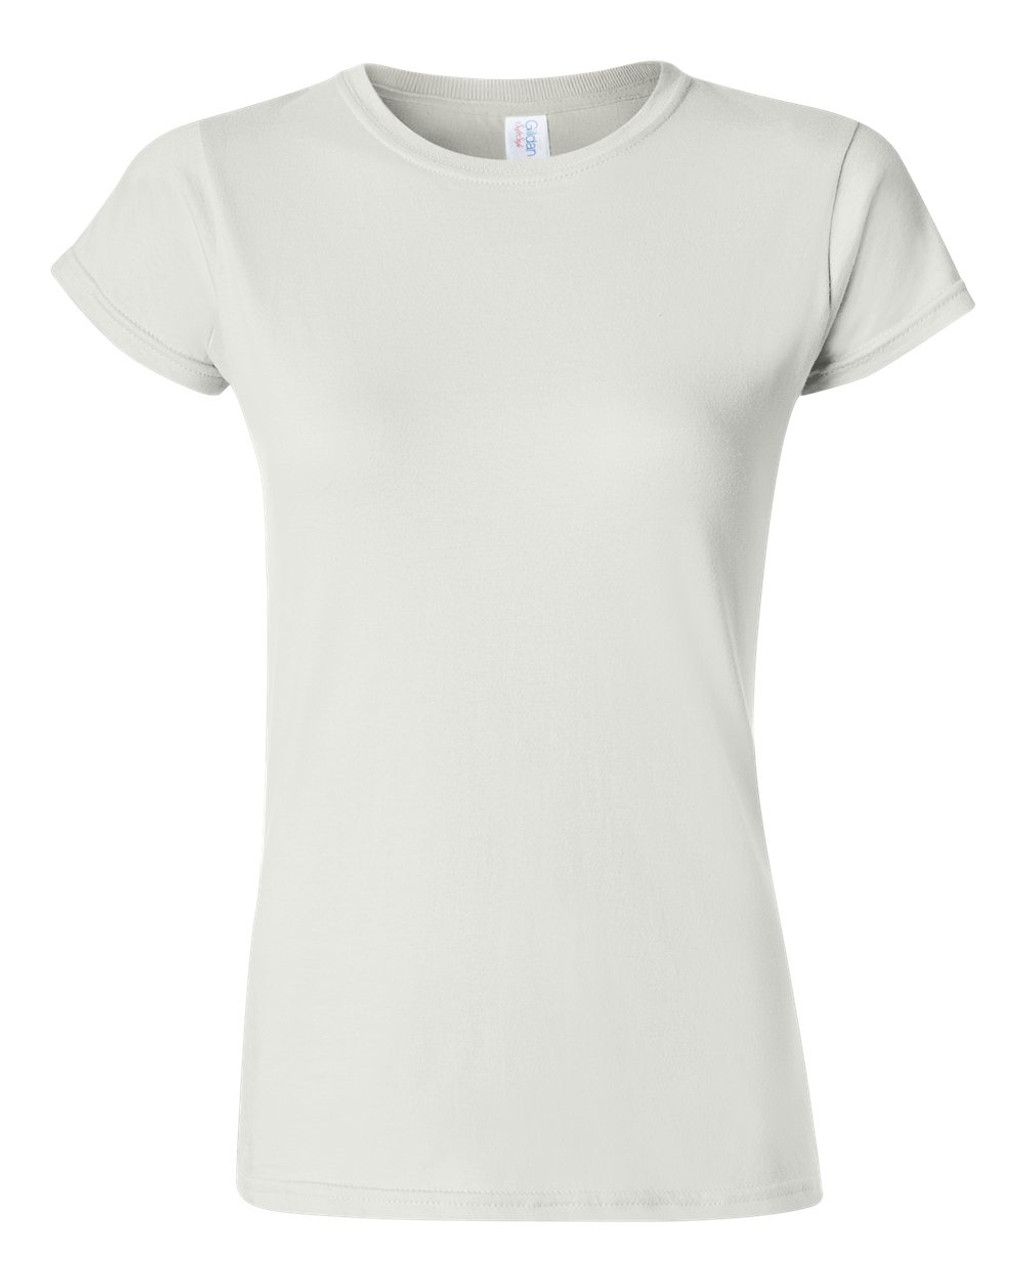 64000L Gildan Ladies Fitted T-shirt | T-shirt.ca